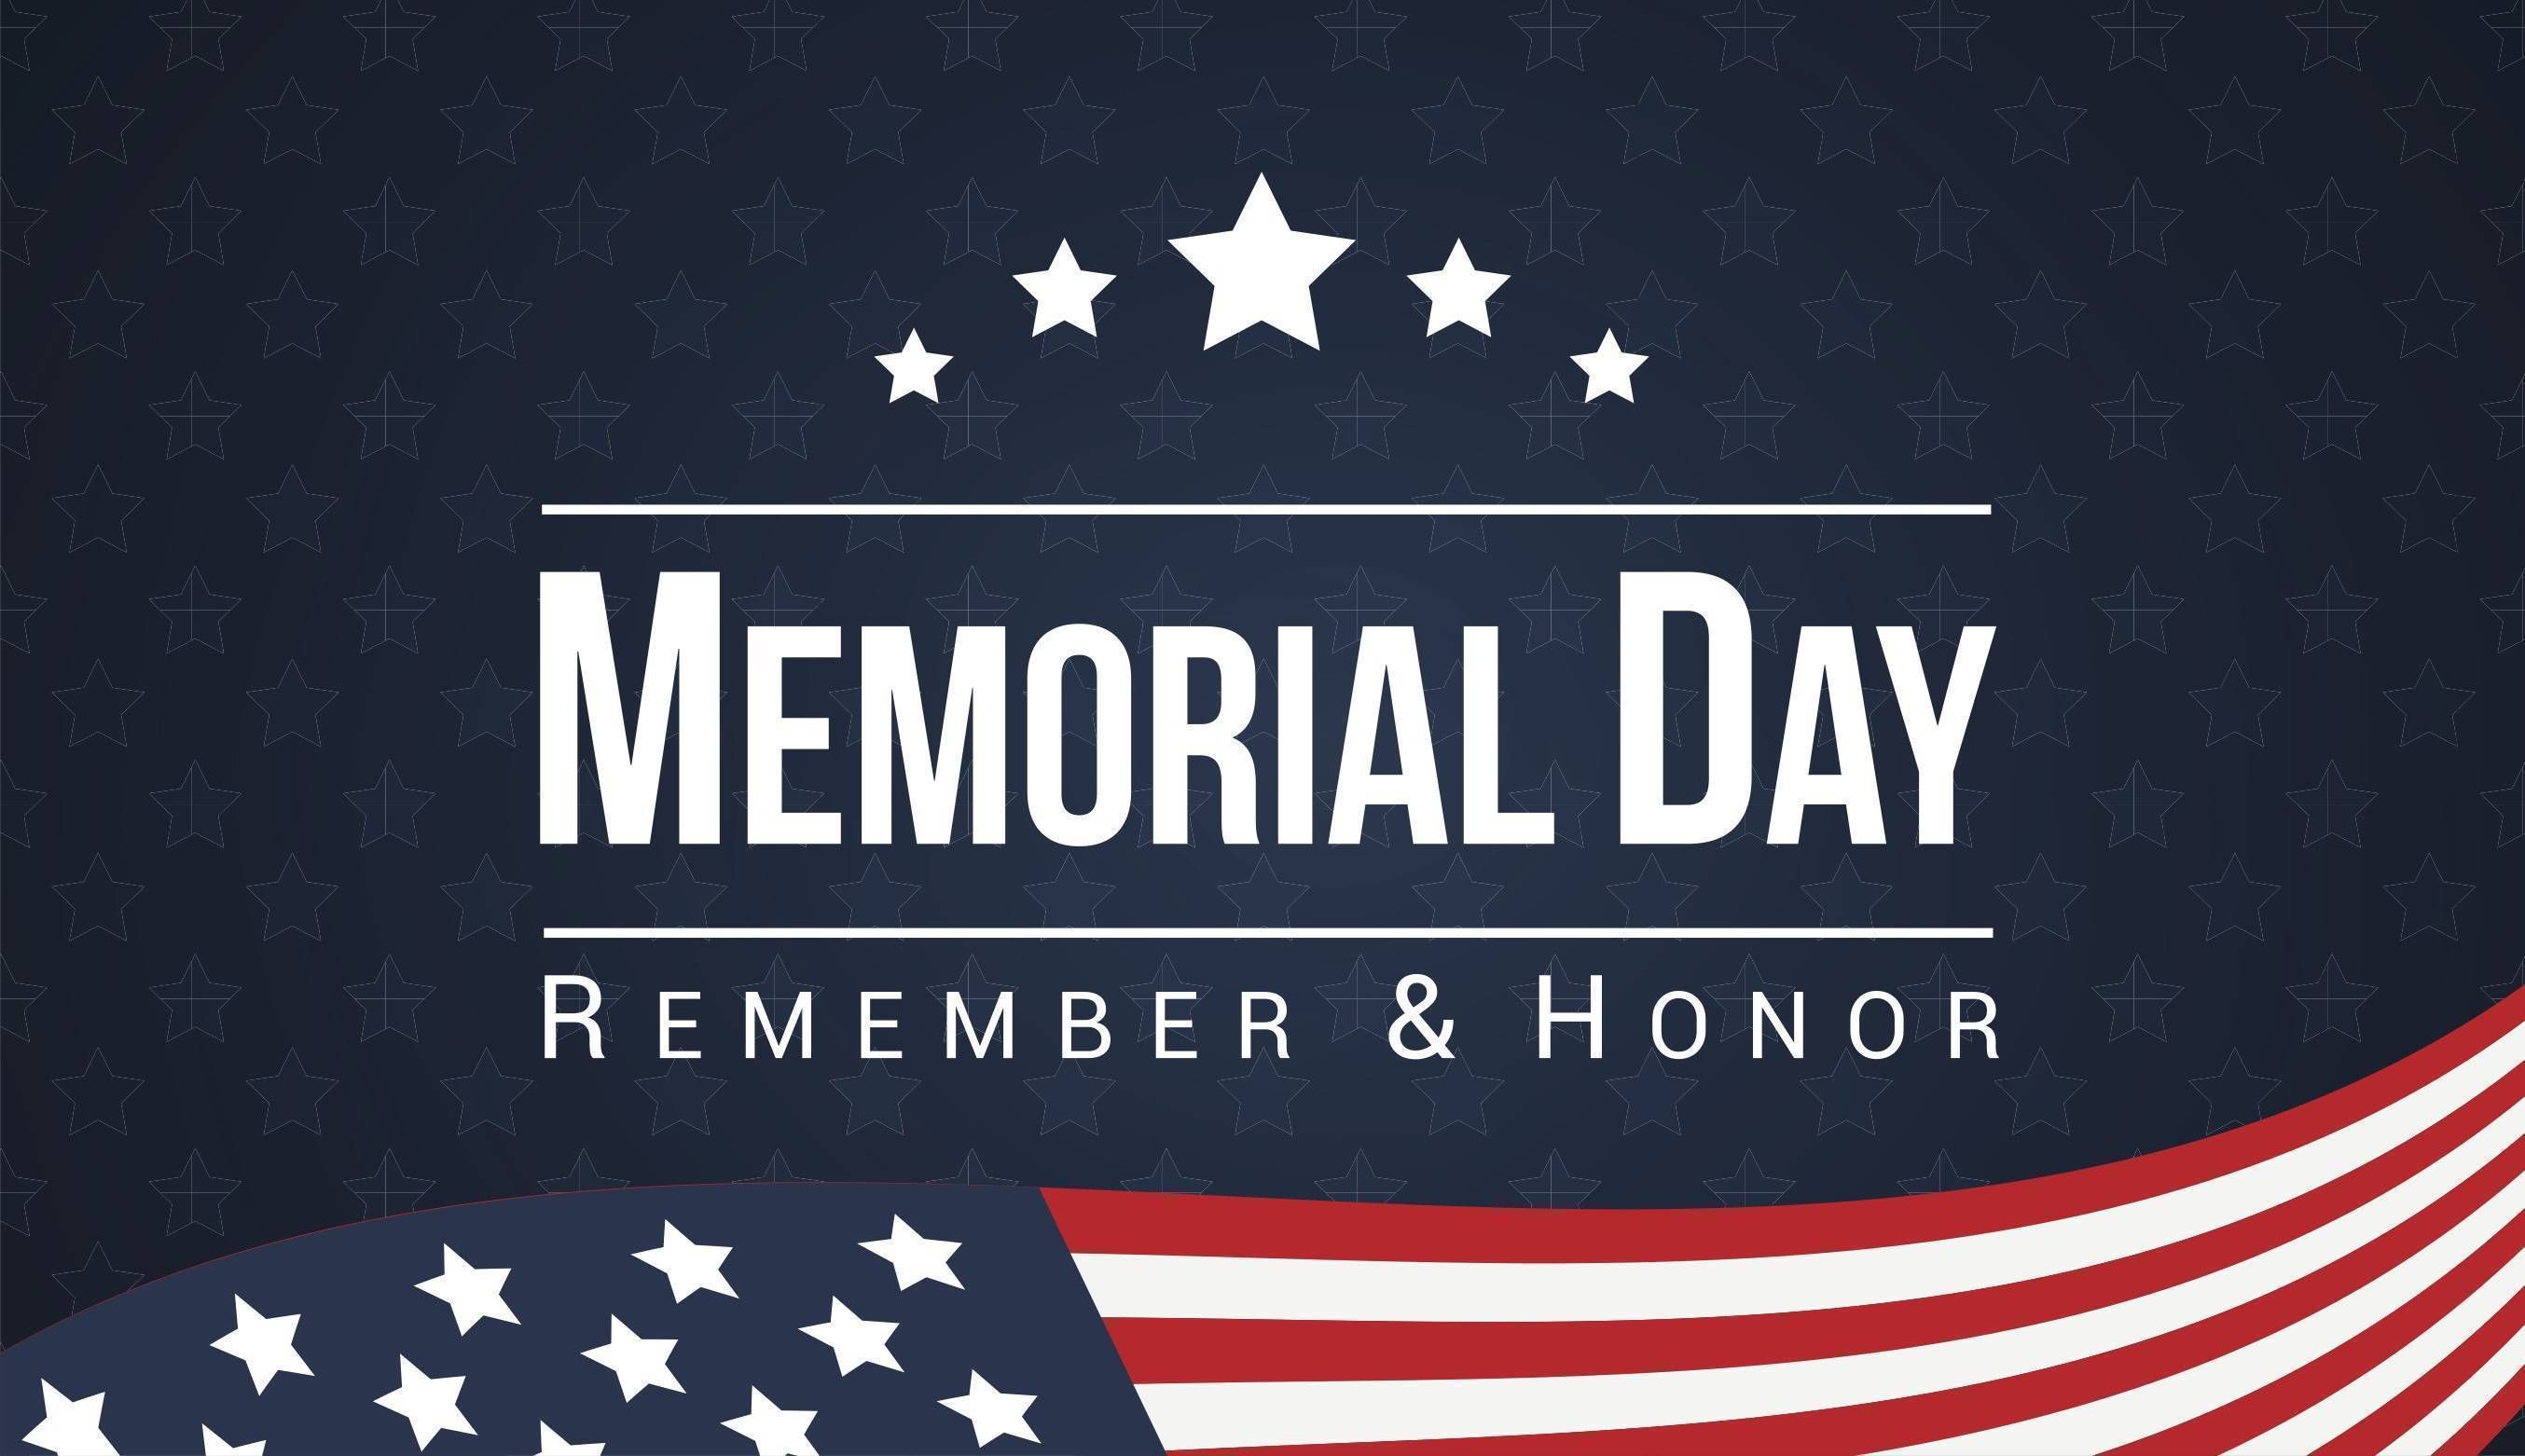 Memorial Day Weekend 2020: Event at the Fredericksburg ...